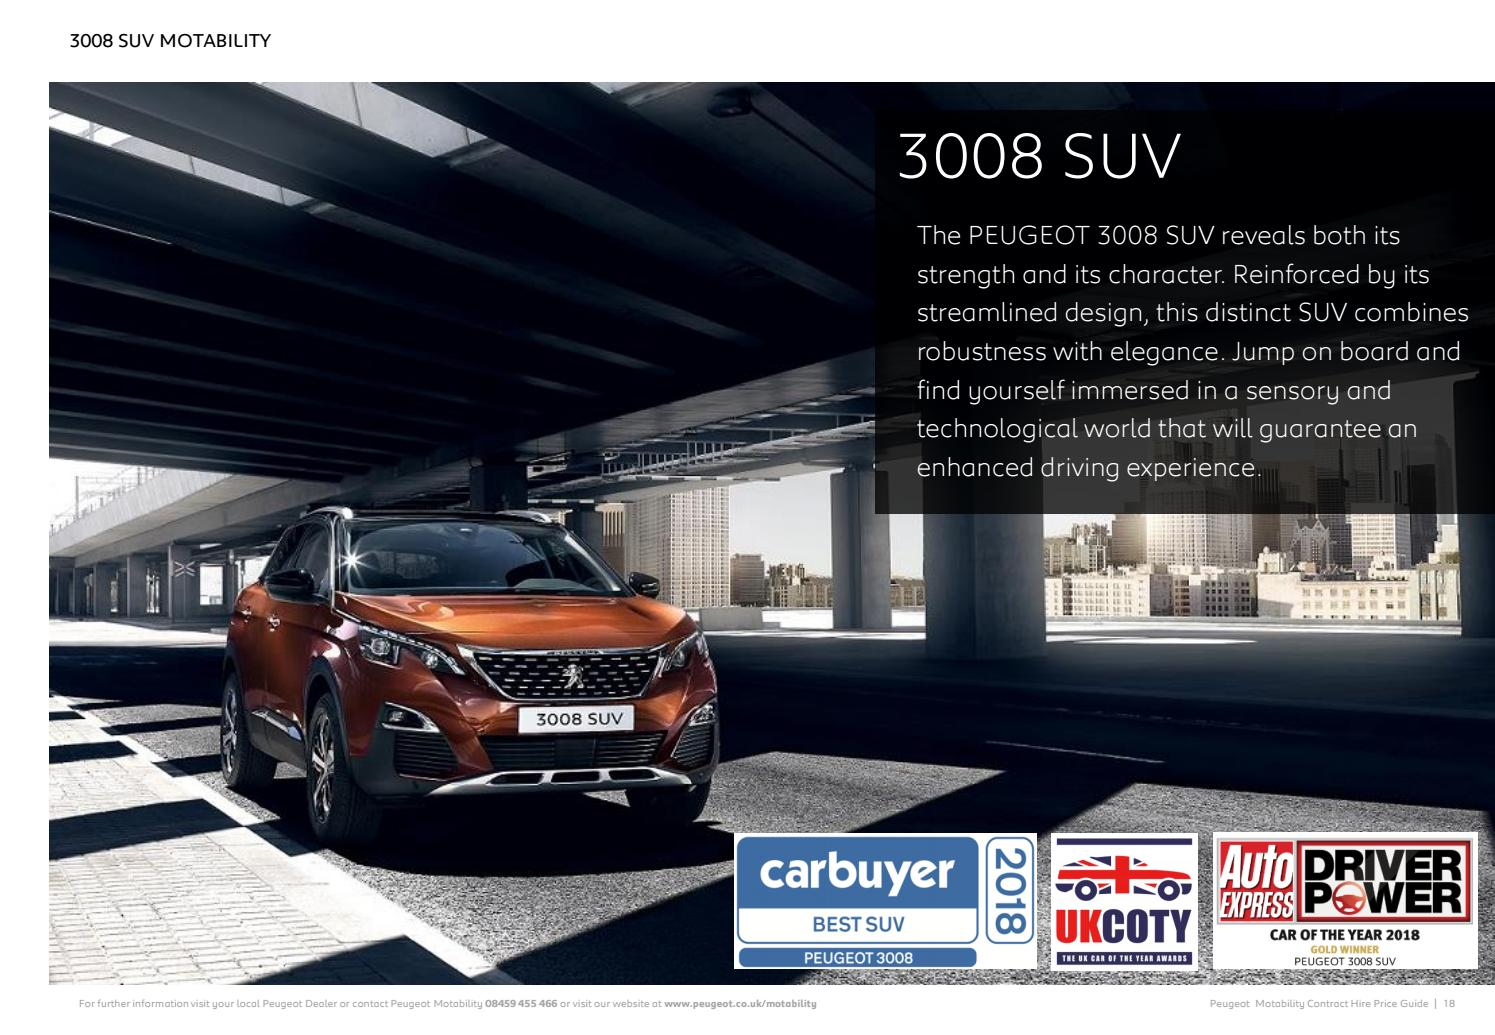 Peugeot 3008 Suv Motability Brochure Q3 2018 By Day S Motor Group